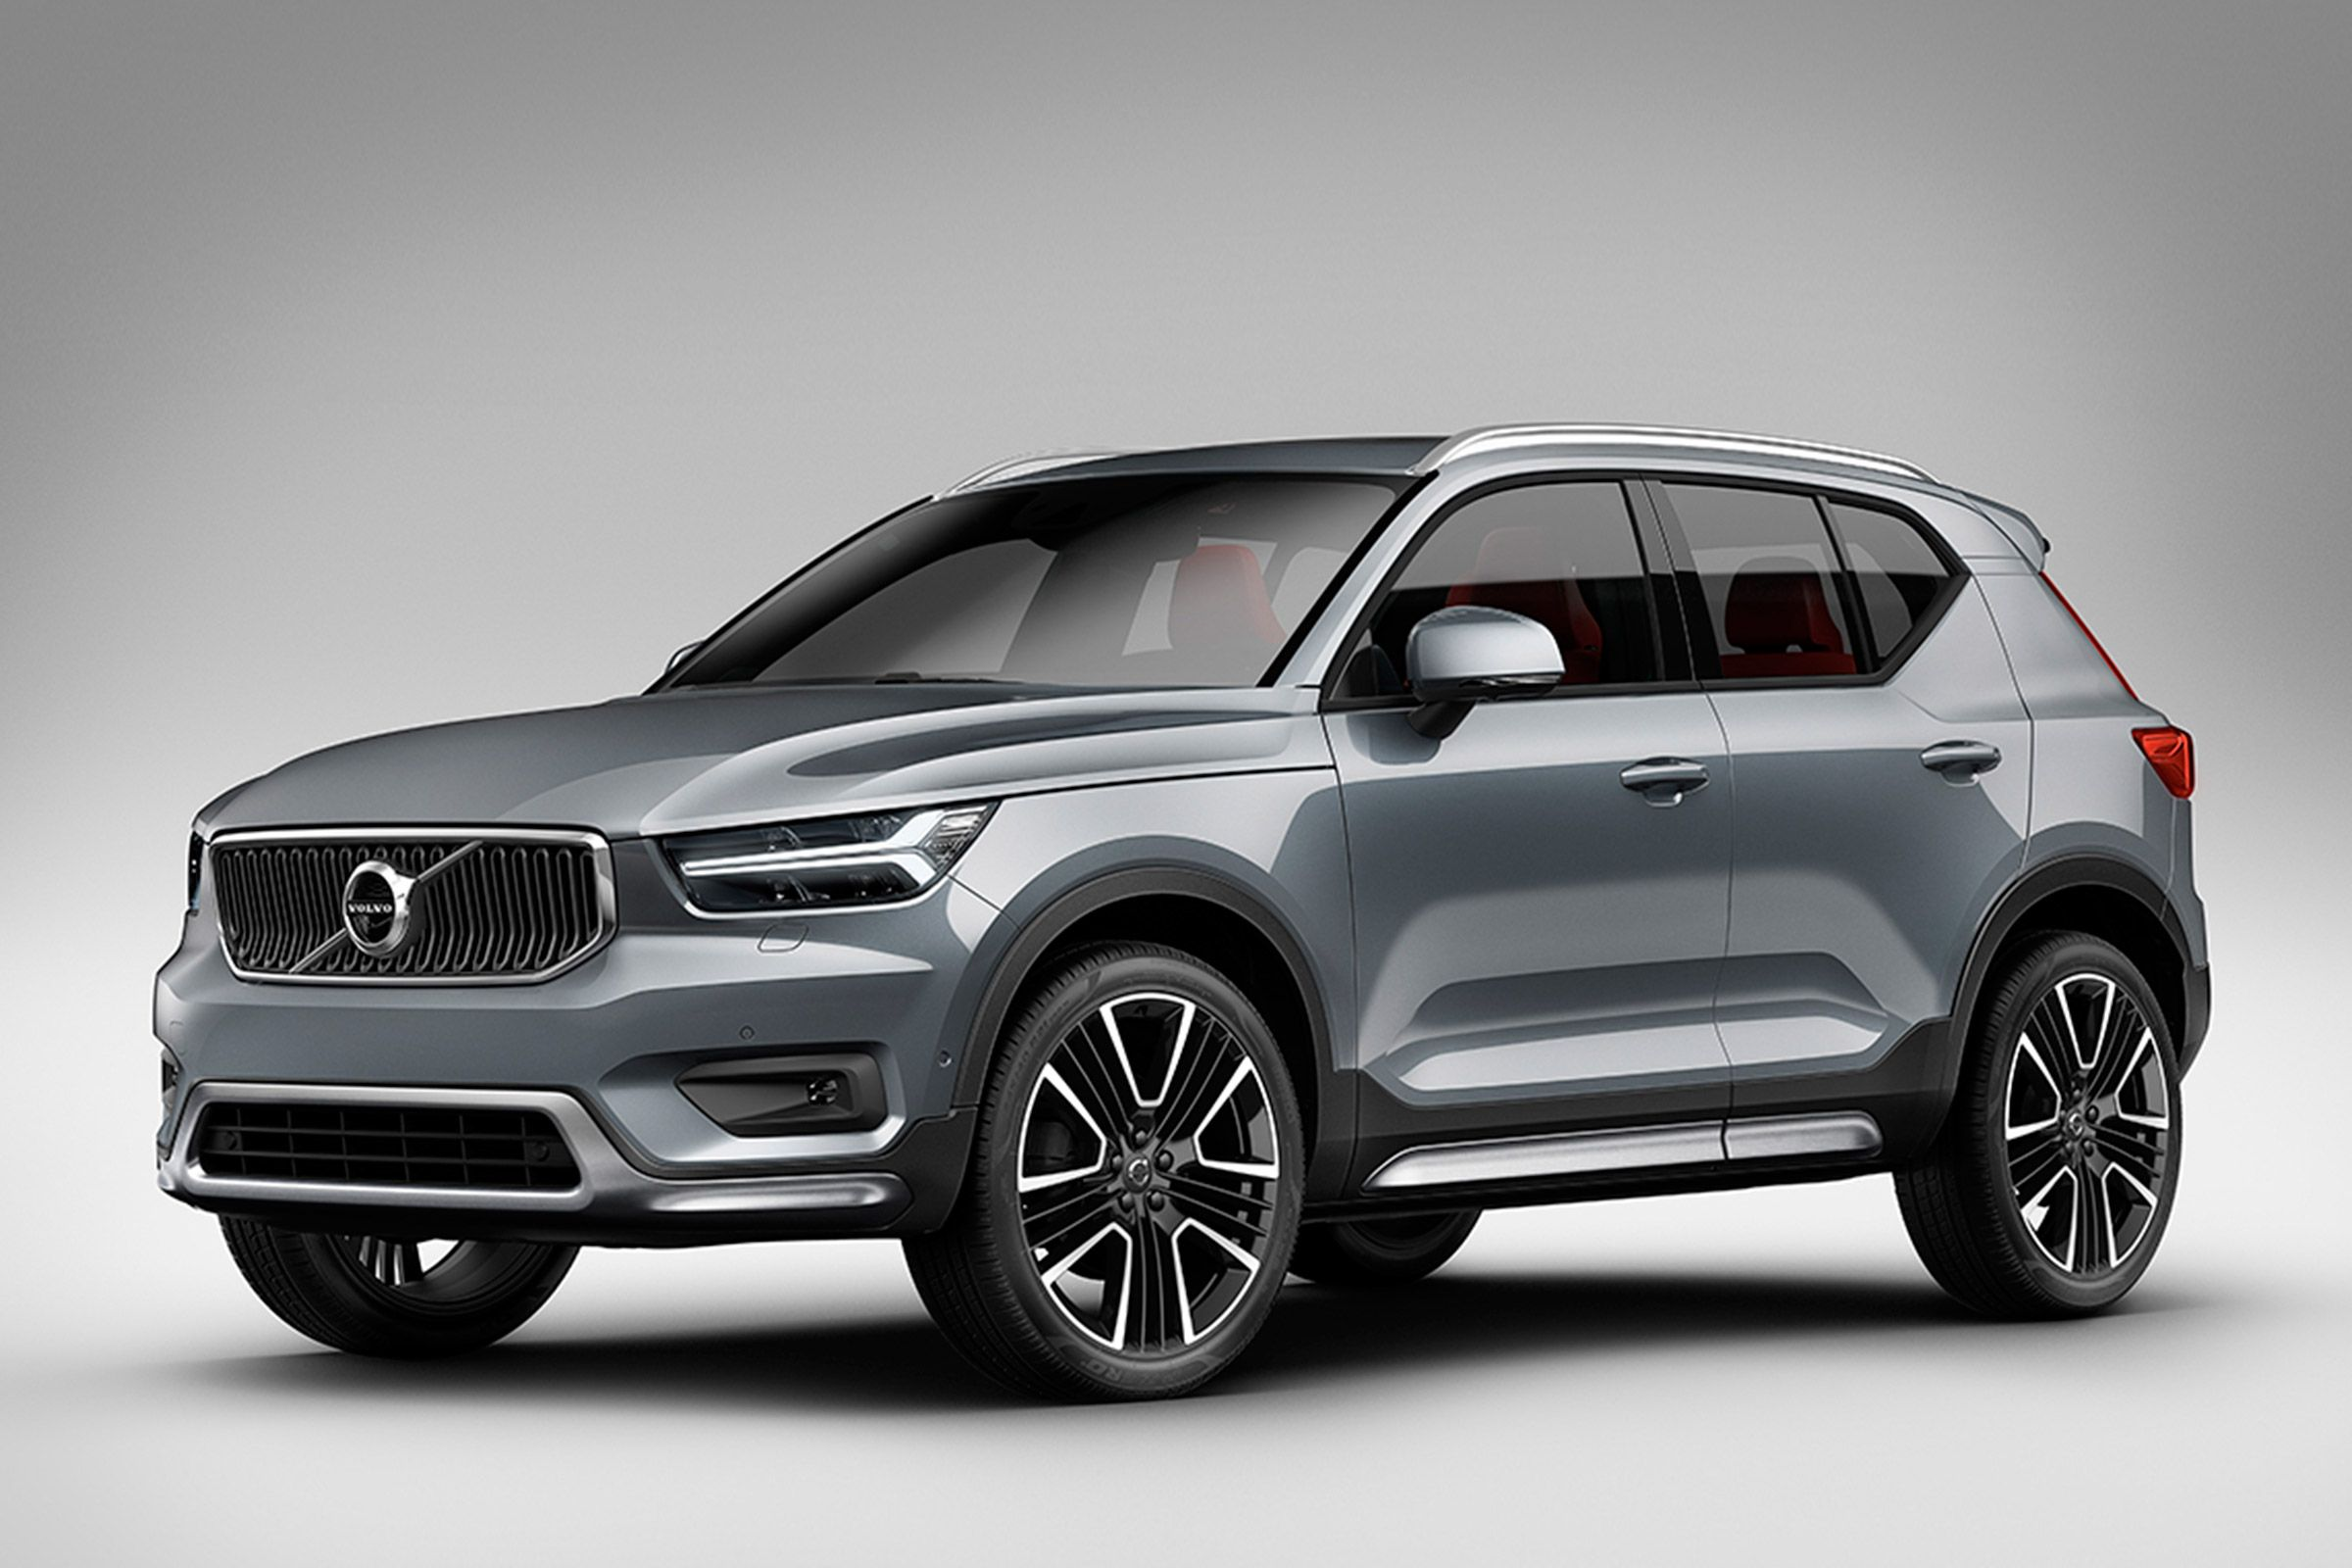 The New Volvo Xc40 Styling Pack Brings Bigger Wheels A Tougher Looking Bodykit And A Subtle Spoiler Volvo Suv Volvo Volvo Cars